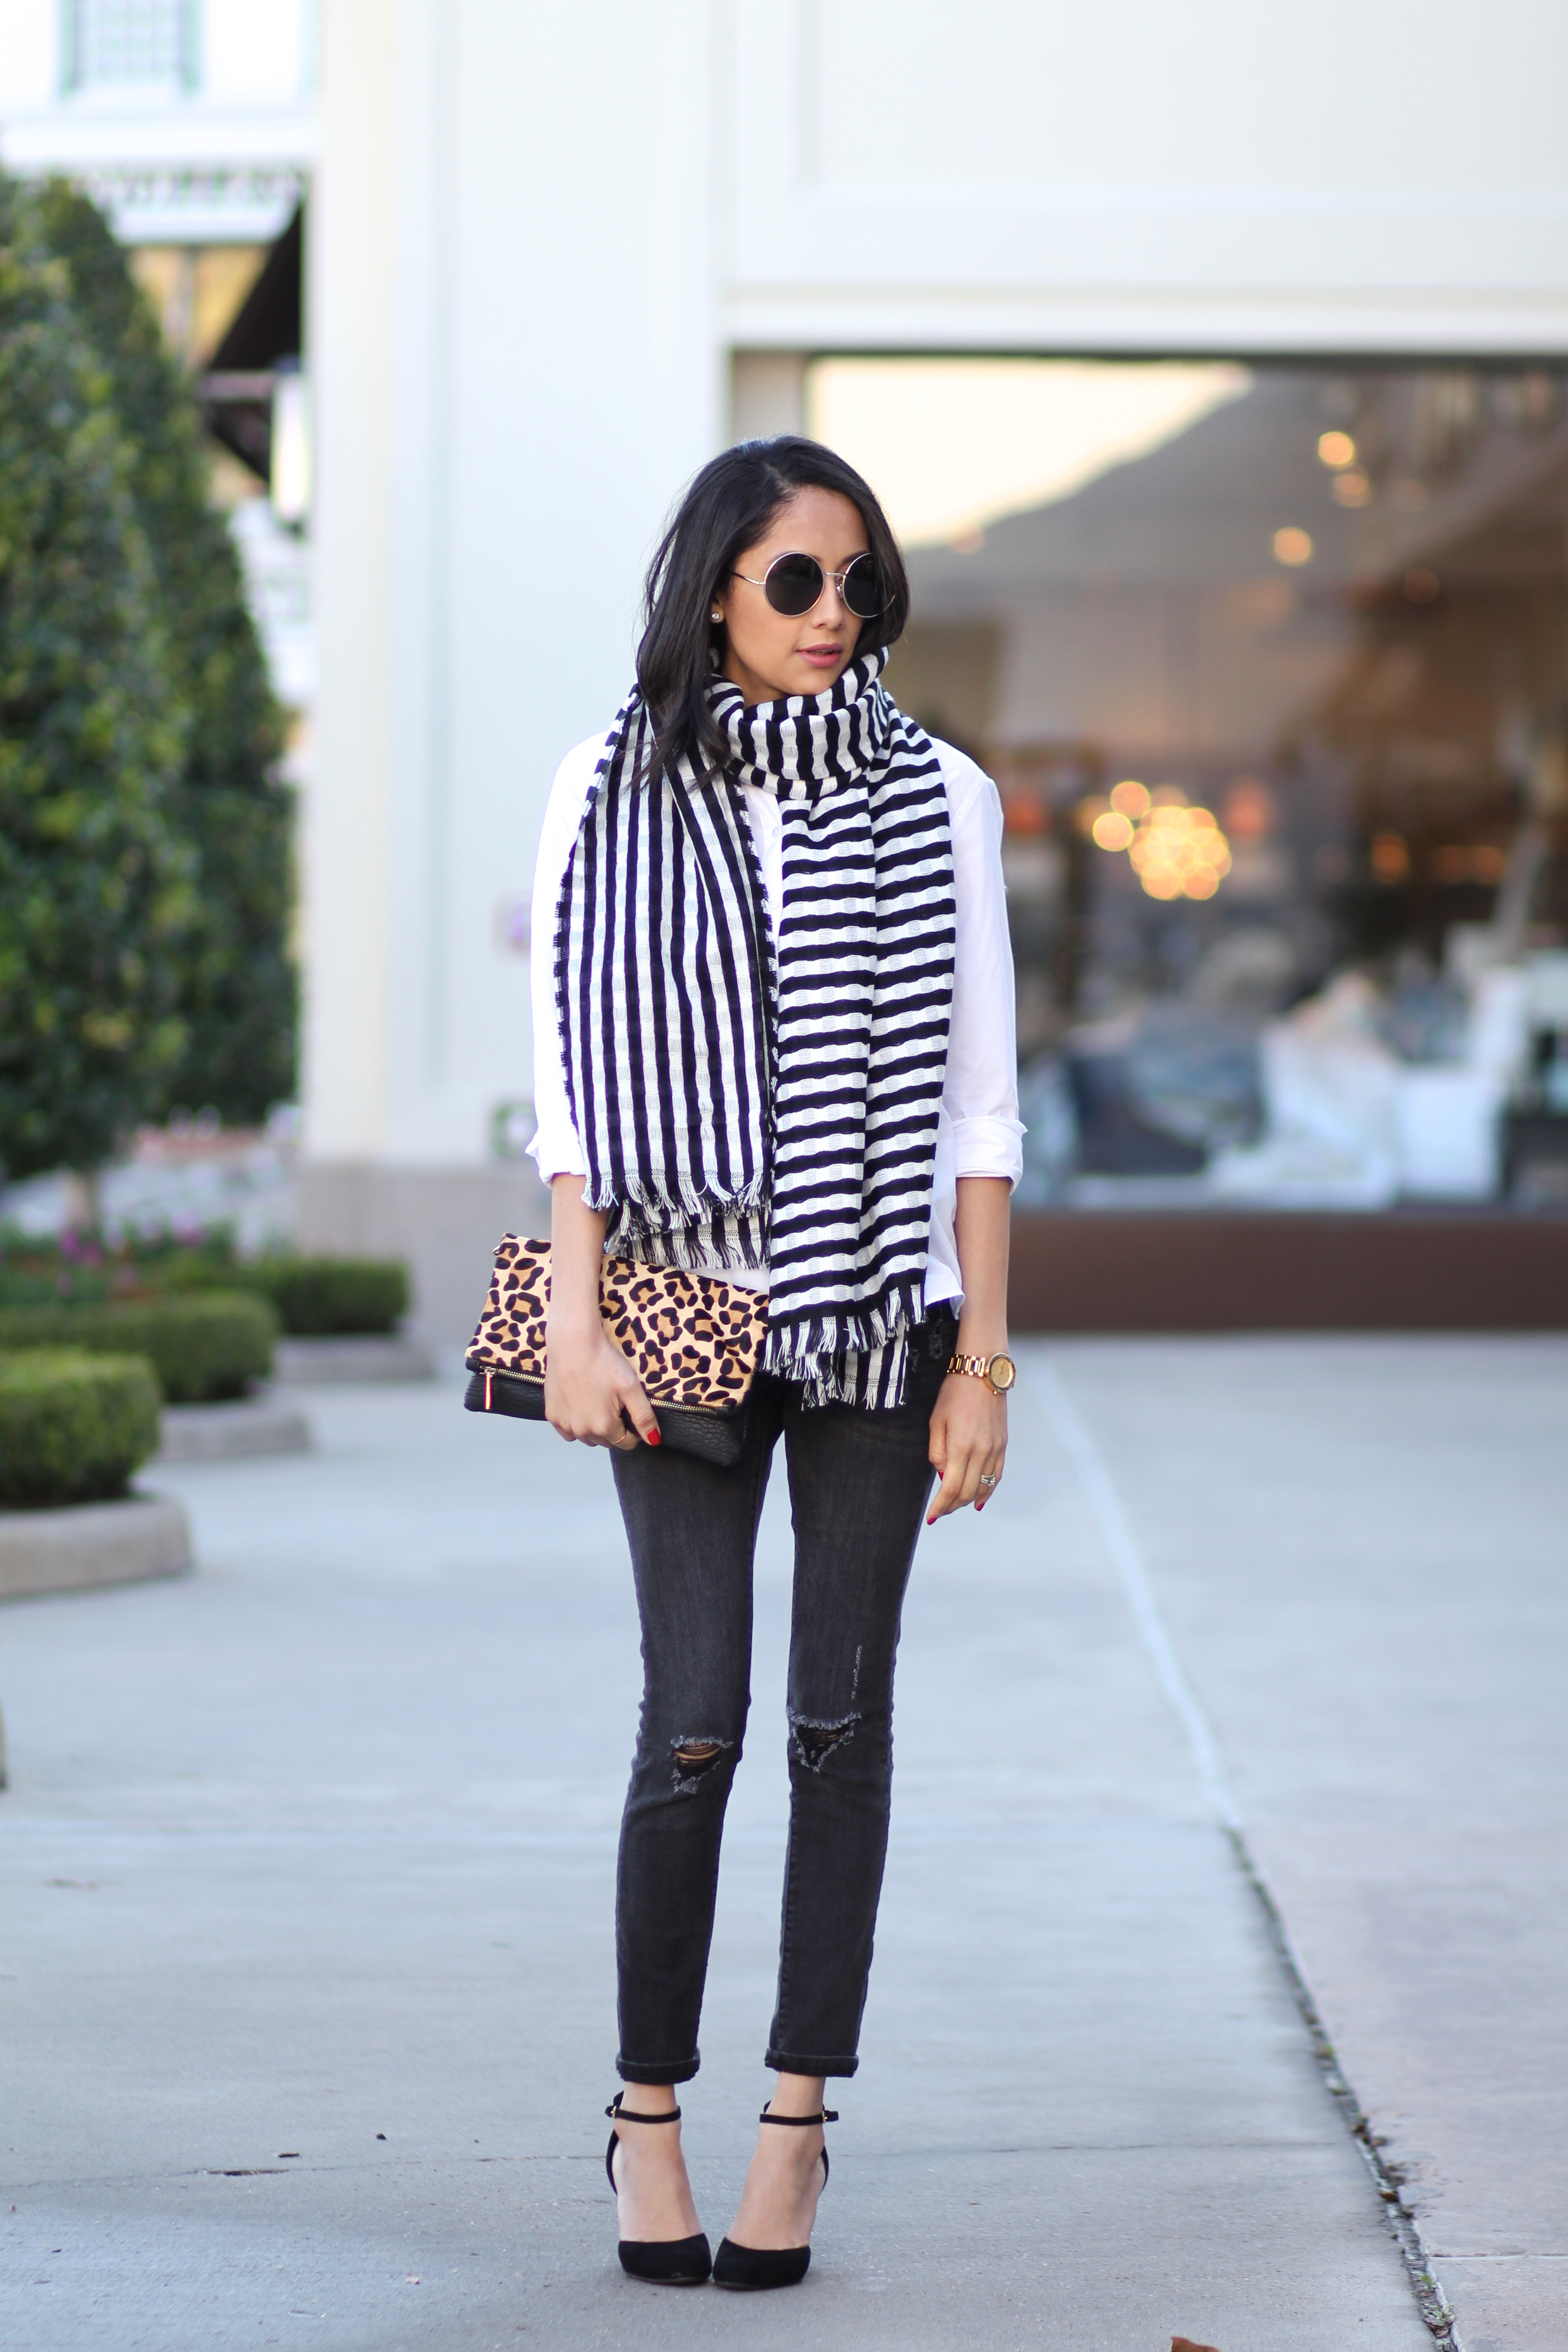 Lifestyle blogger Lilly Beltran in a striped blanket scarf and skinny jeans